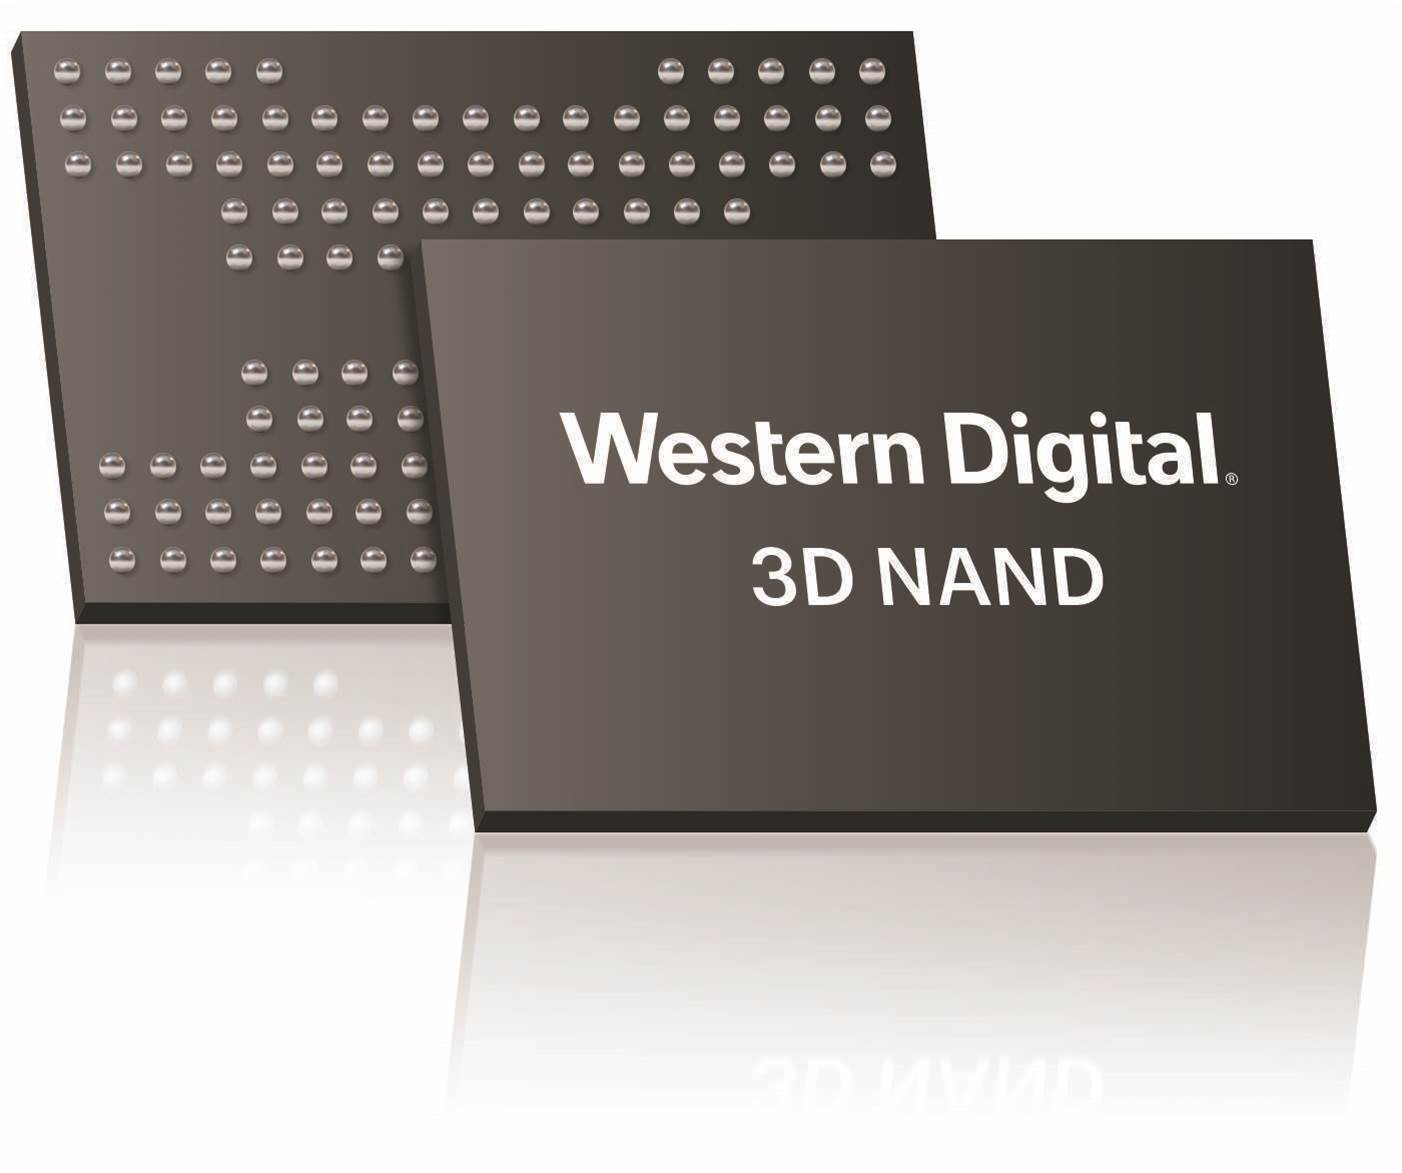 WD announces 96-layer 3D NAND breakthrough